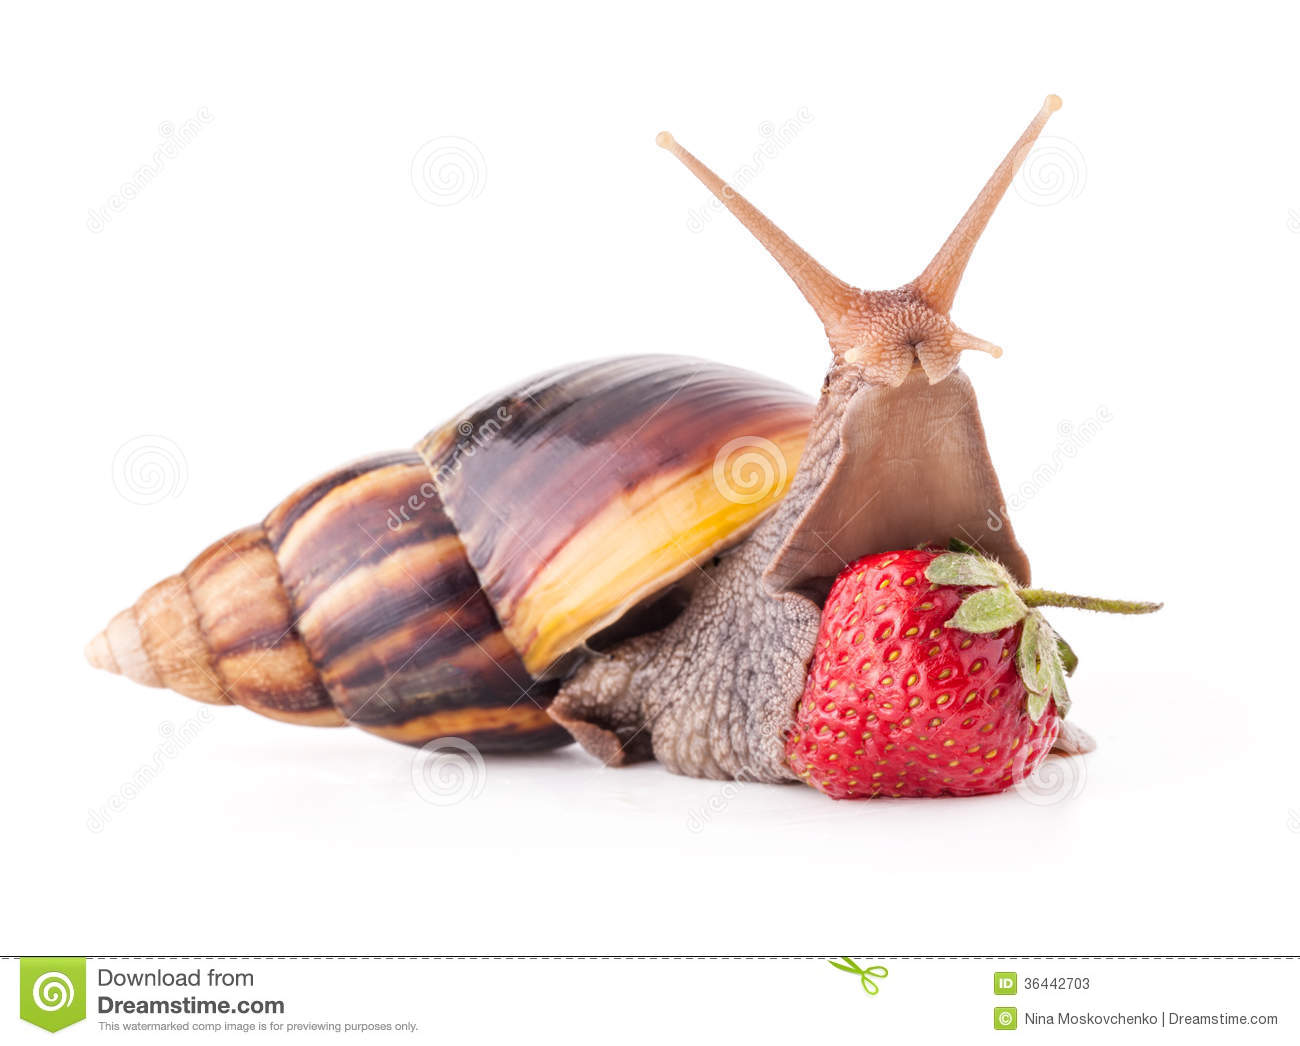 Giant african land snail eating - photo#4